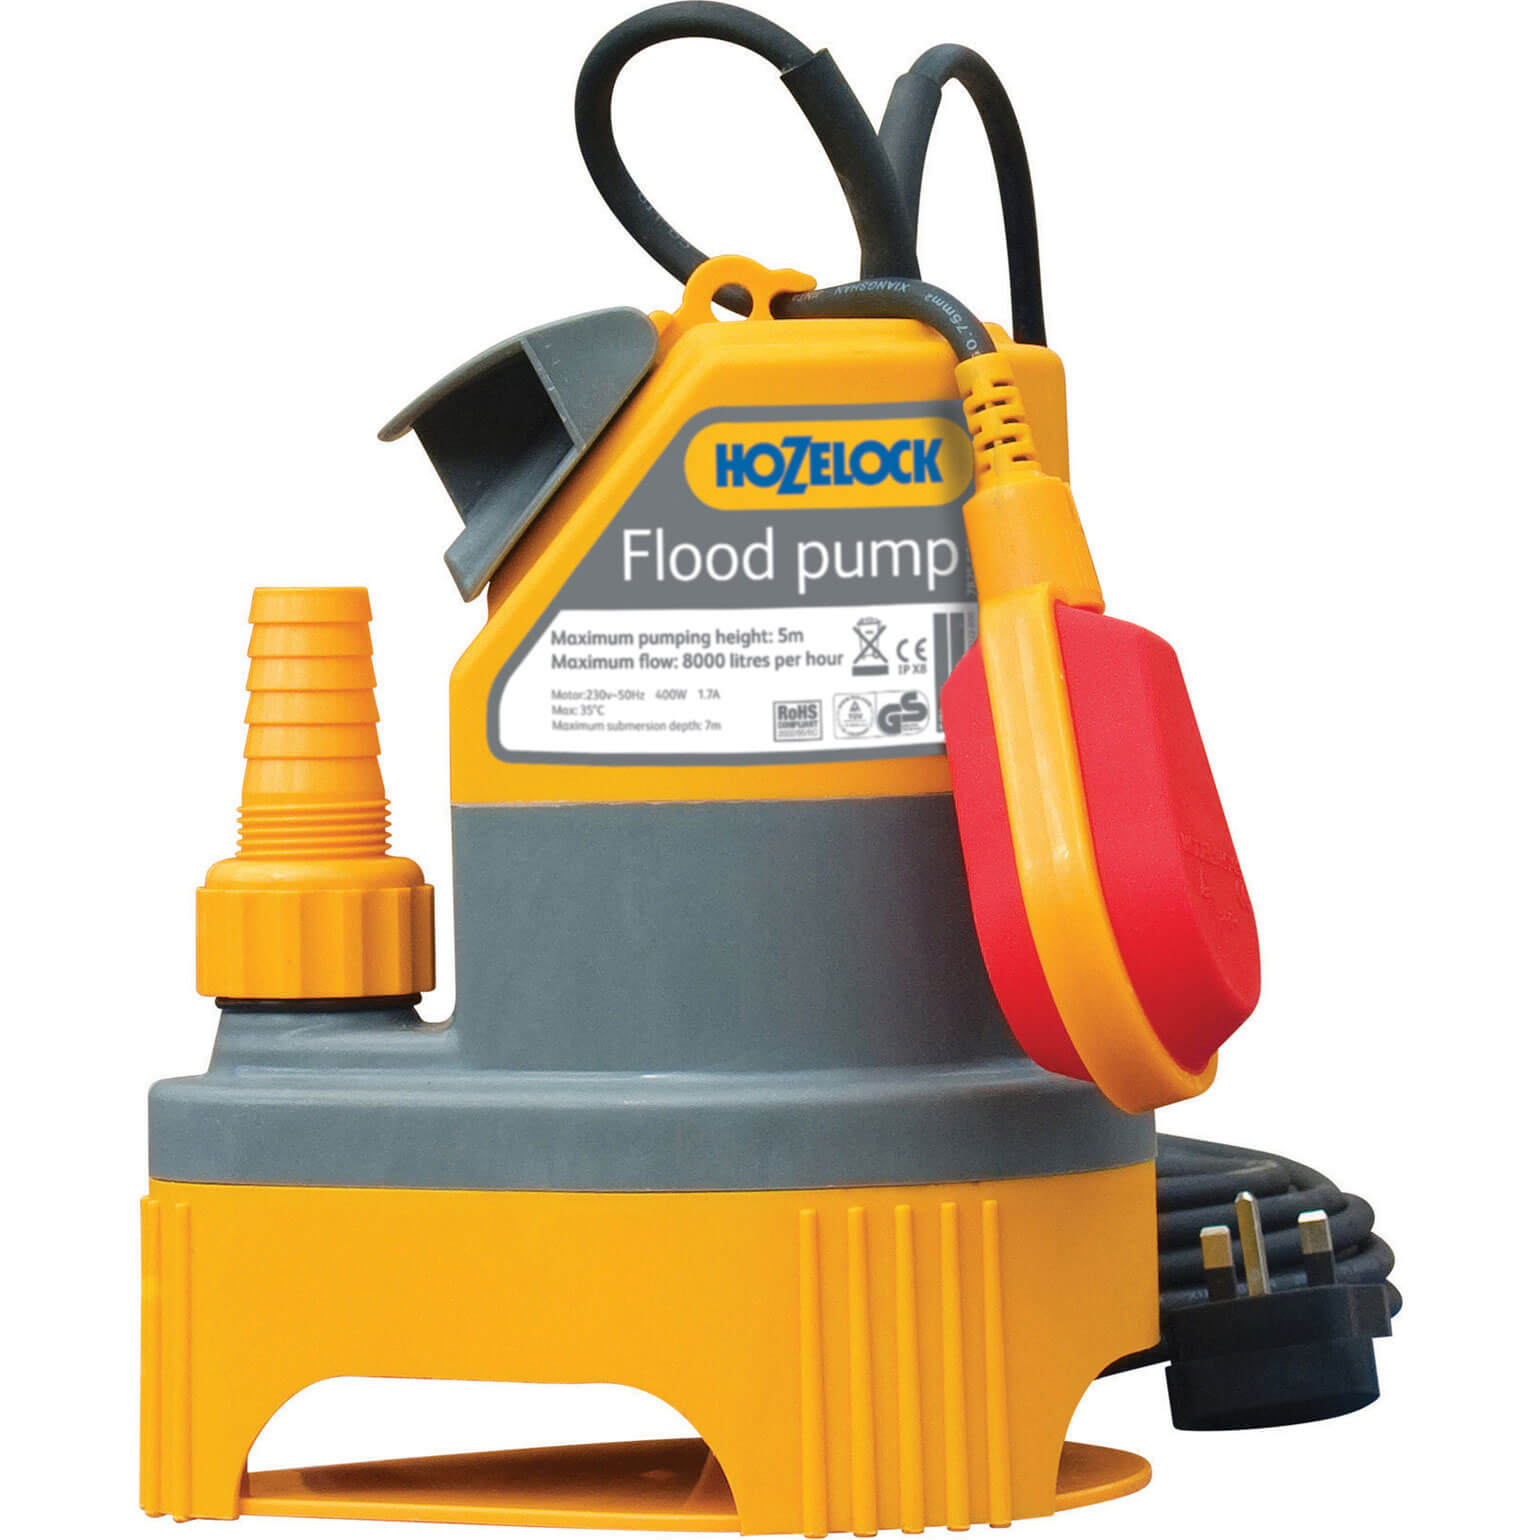 Hozelock 2 In 1 Submersible Flood & Dirty Water Pump 240v